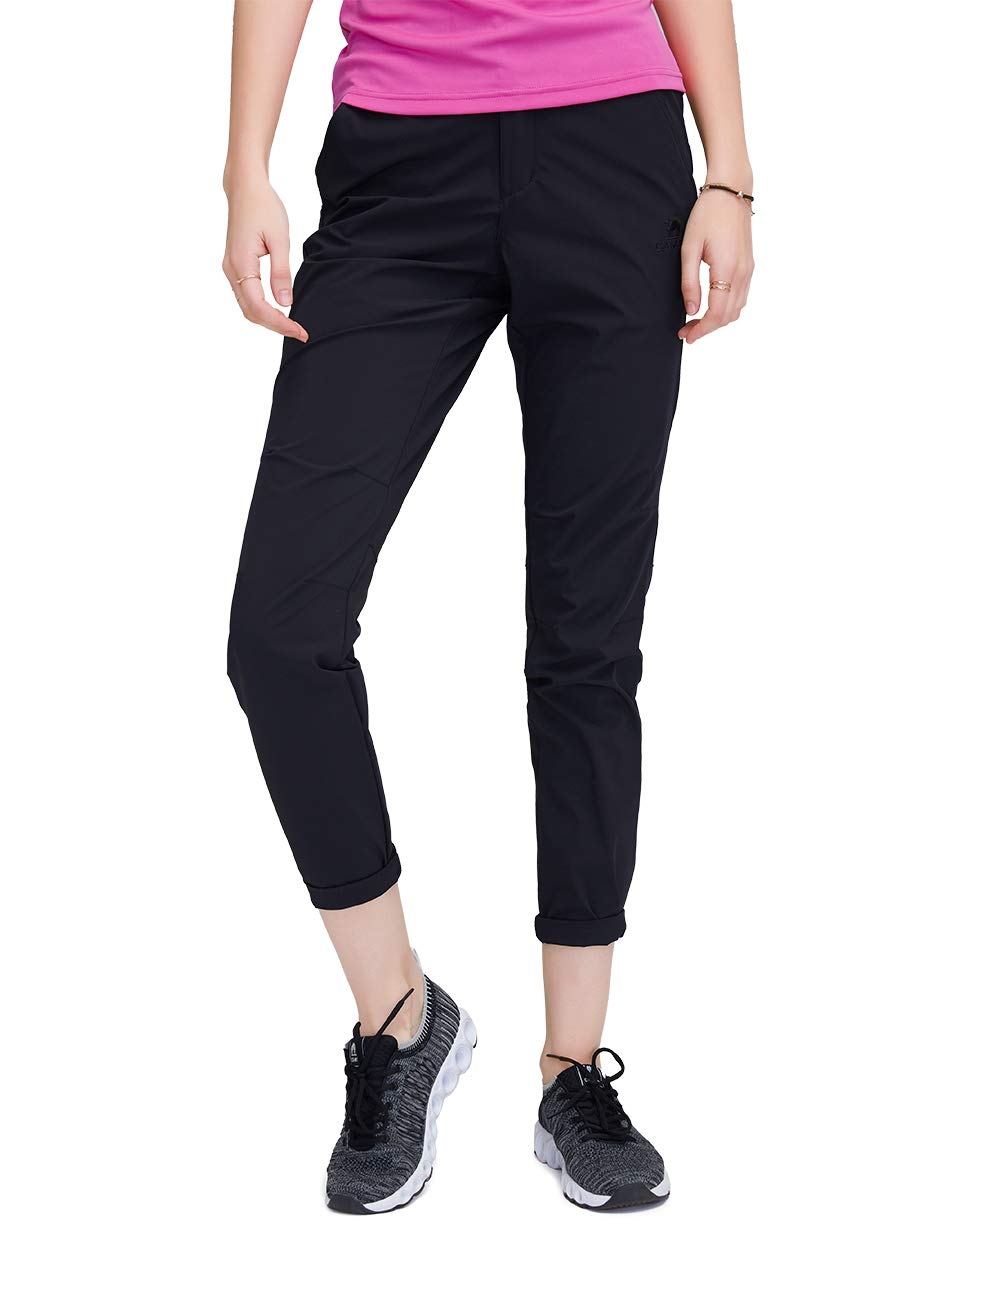 268c0ff782d2b9 Amazon.com : Camel Mens Womens Hiking Pants Lightweight Quick Dry Casual  Long Trousers : Sports & Outdoors